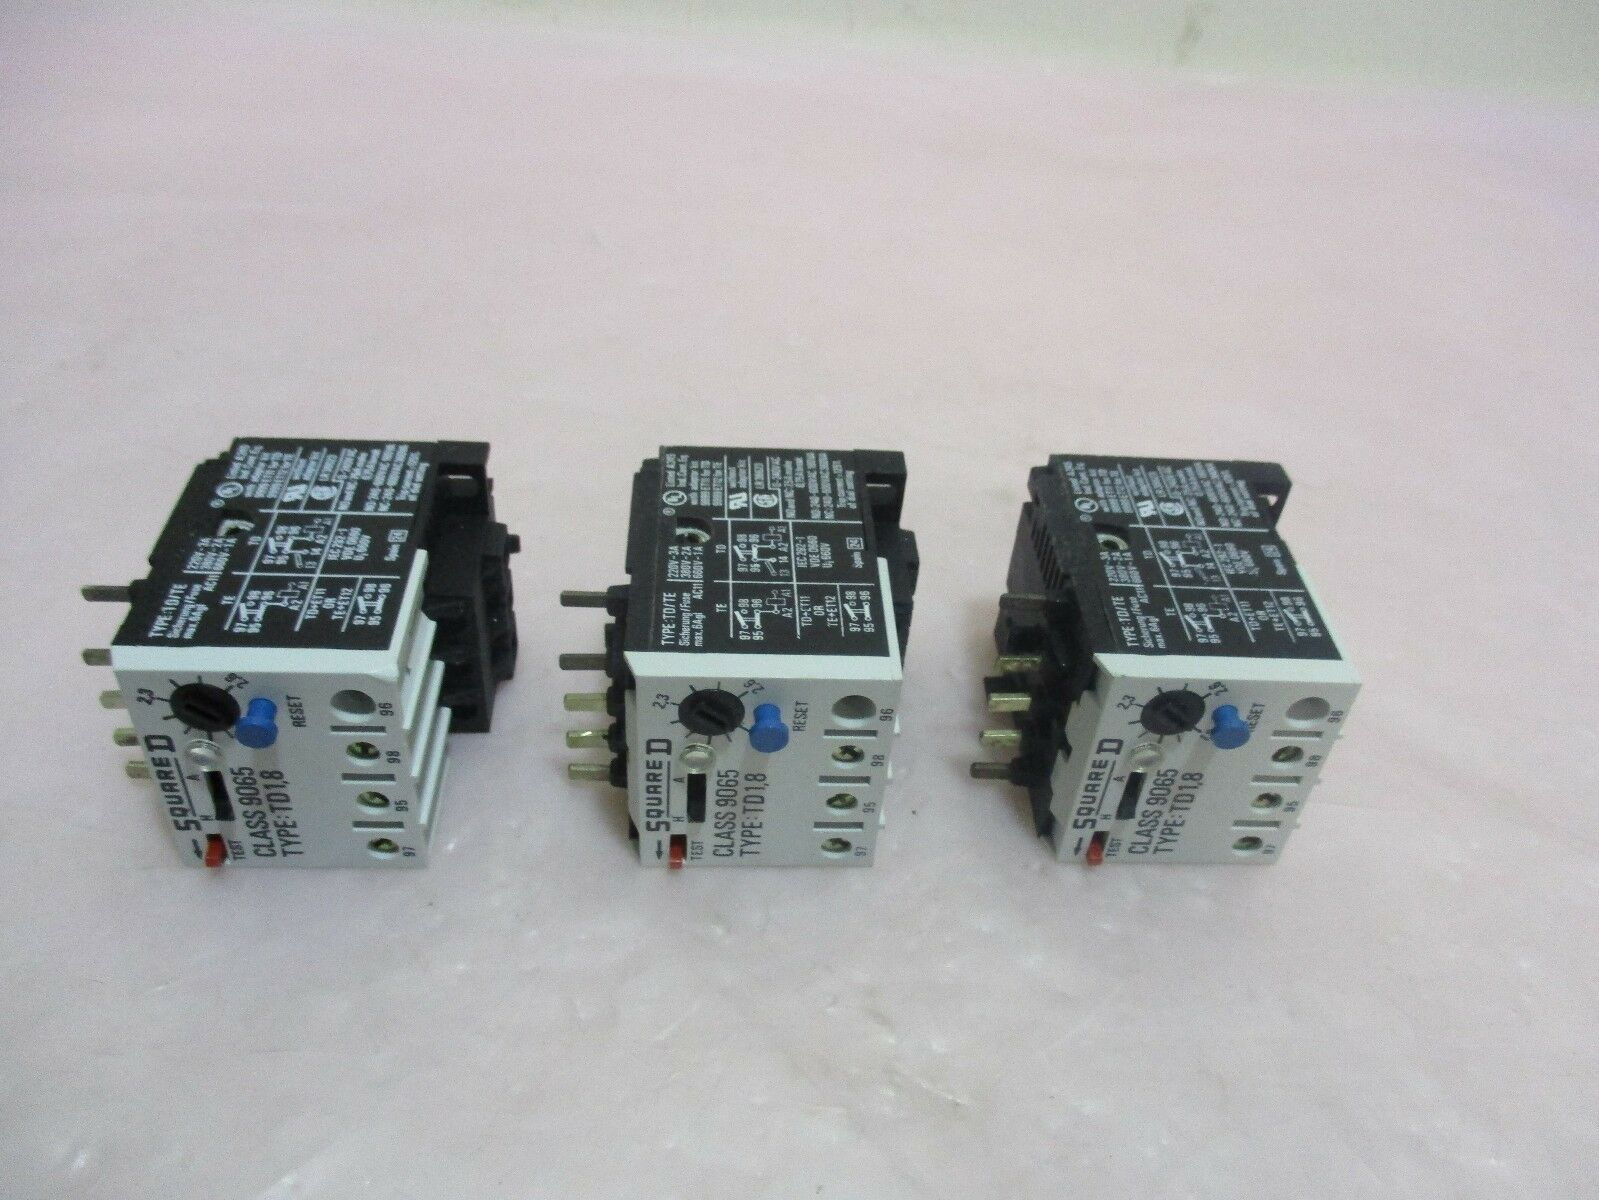 3 Varian 4500133, Thermal Overload Relay, 3PH, Square D, Case 9065. 420160